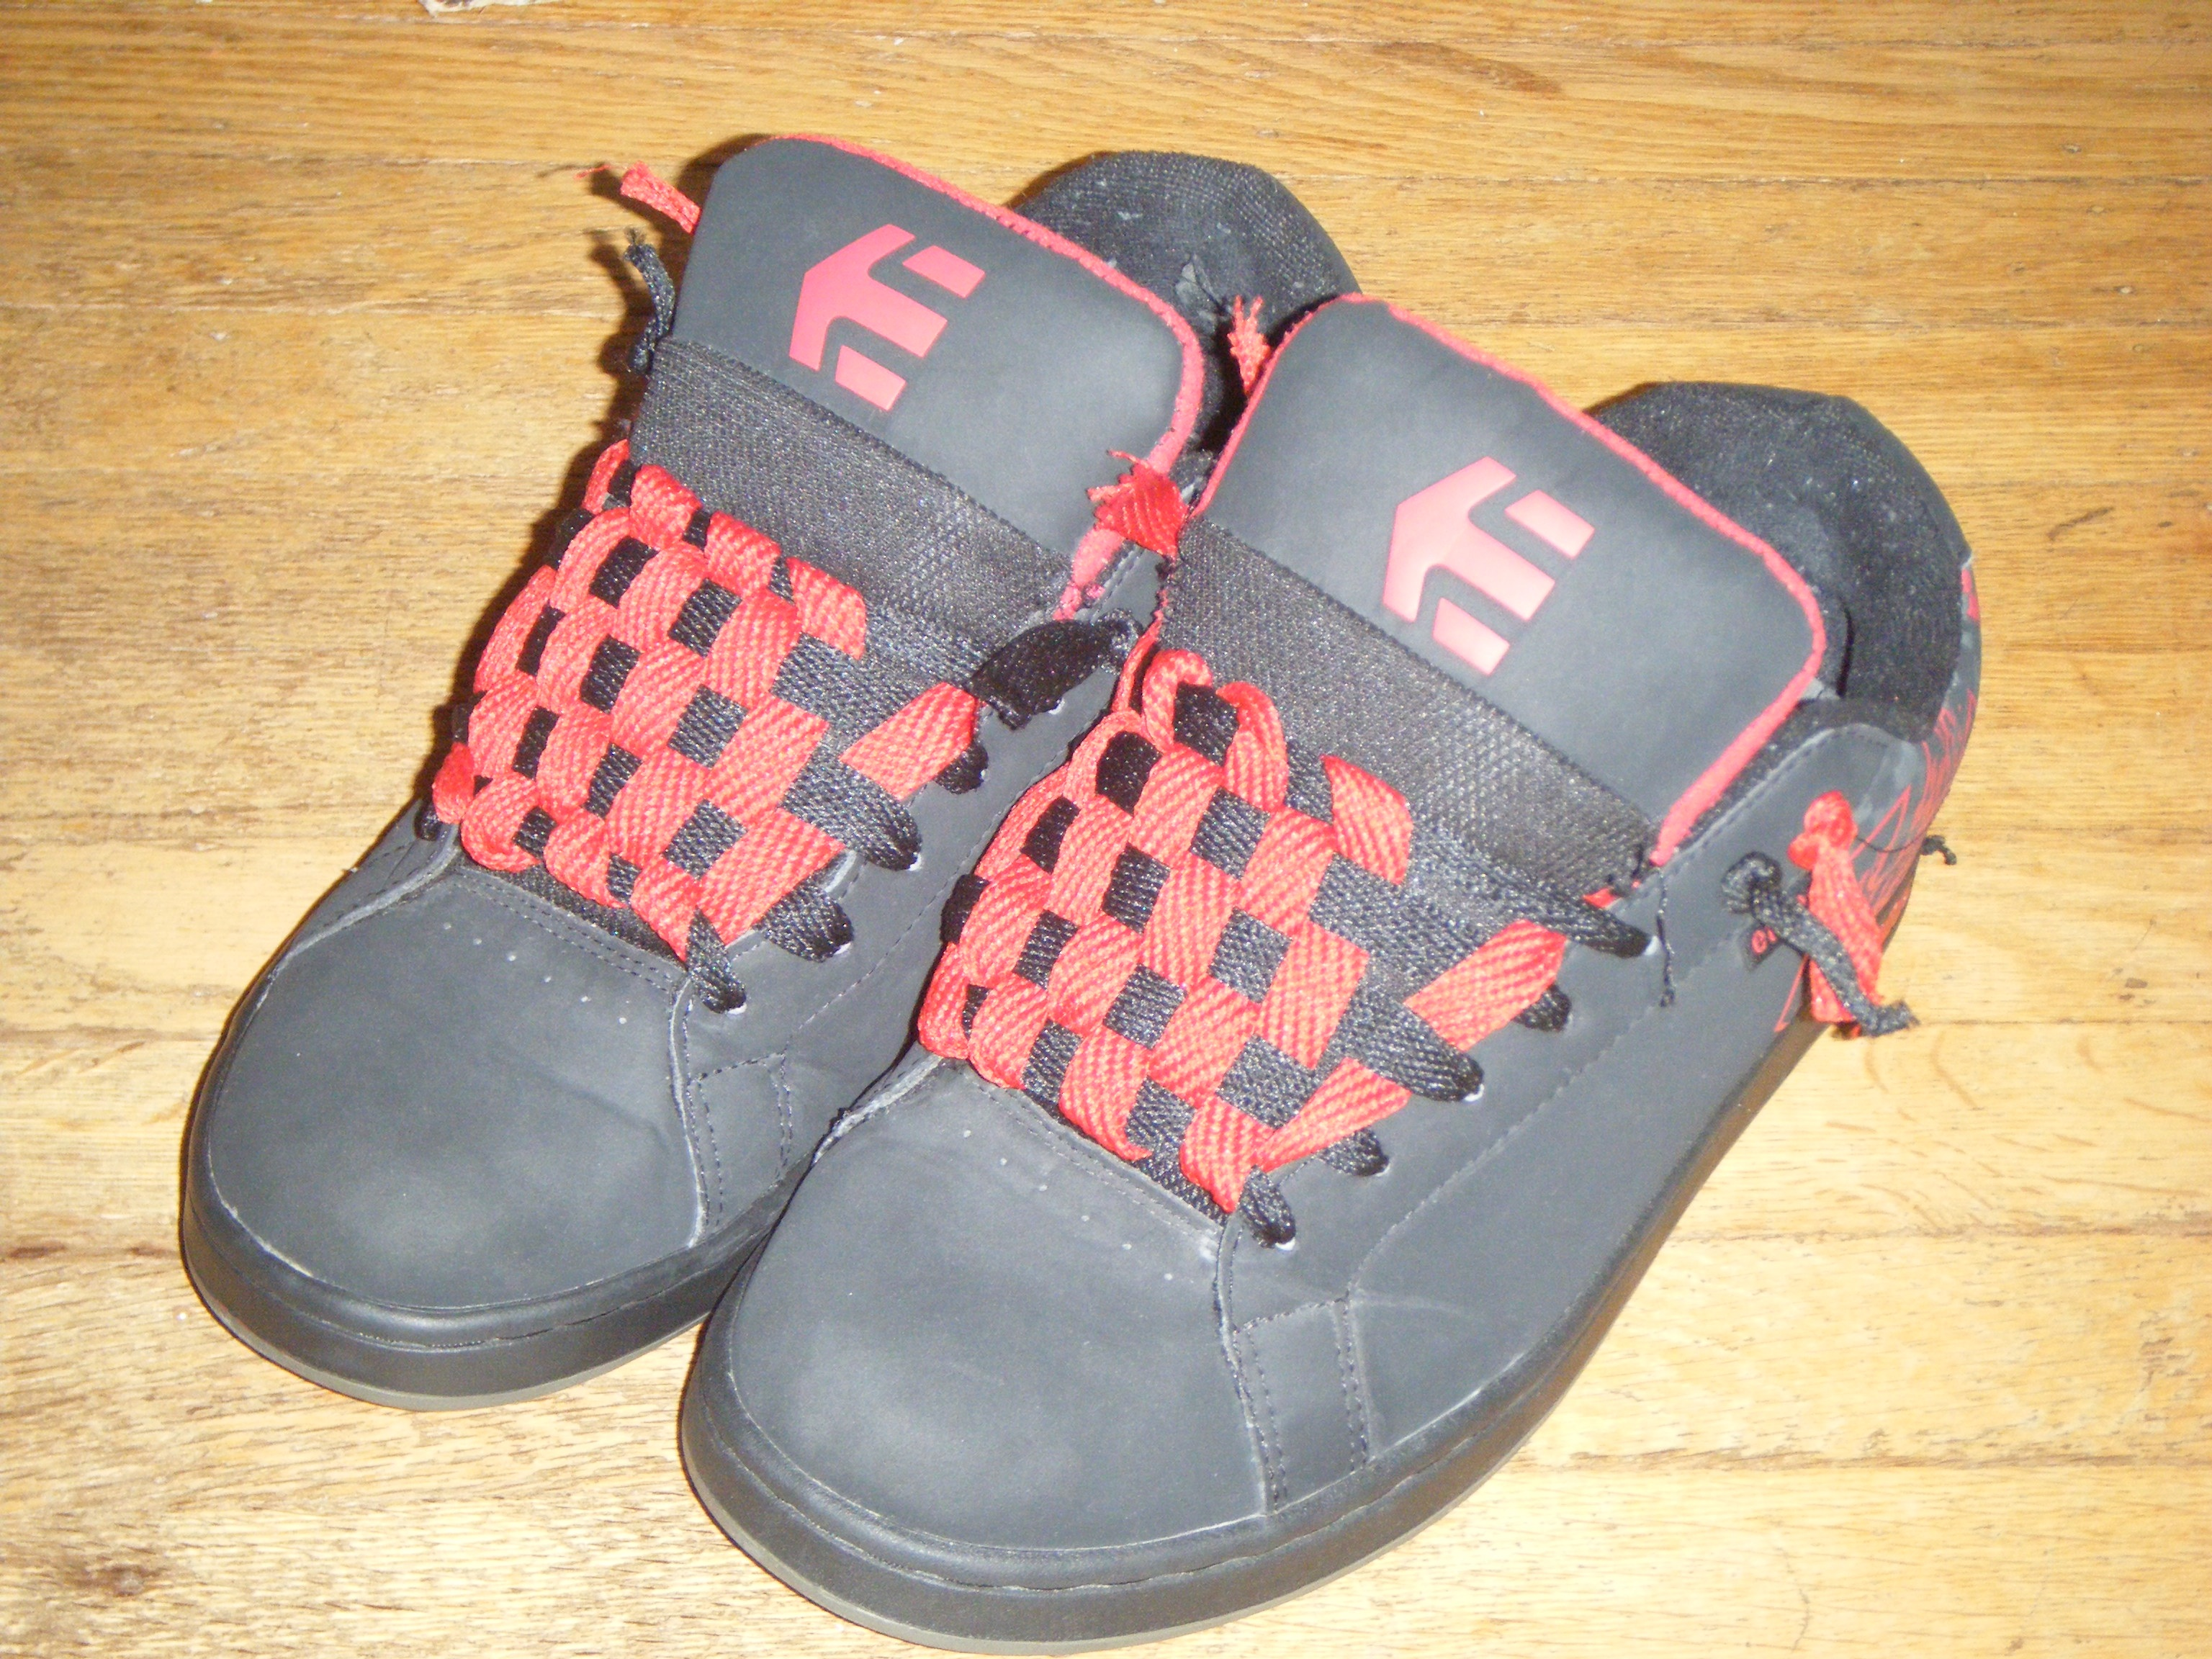 Adidas Skate Shoes Ebay